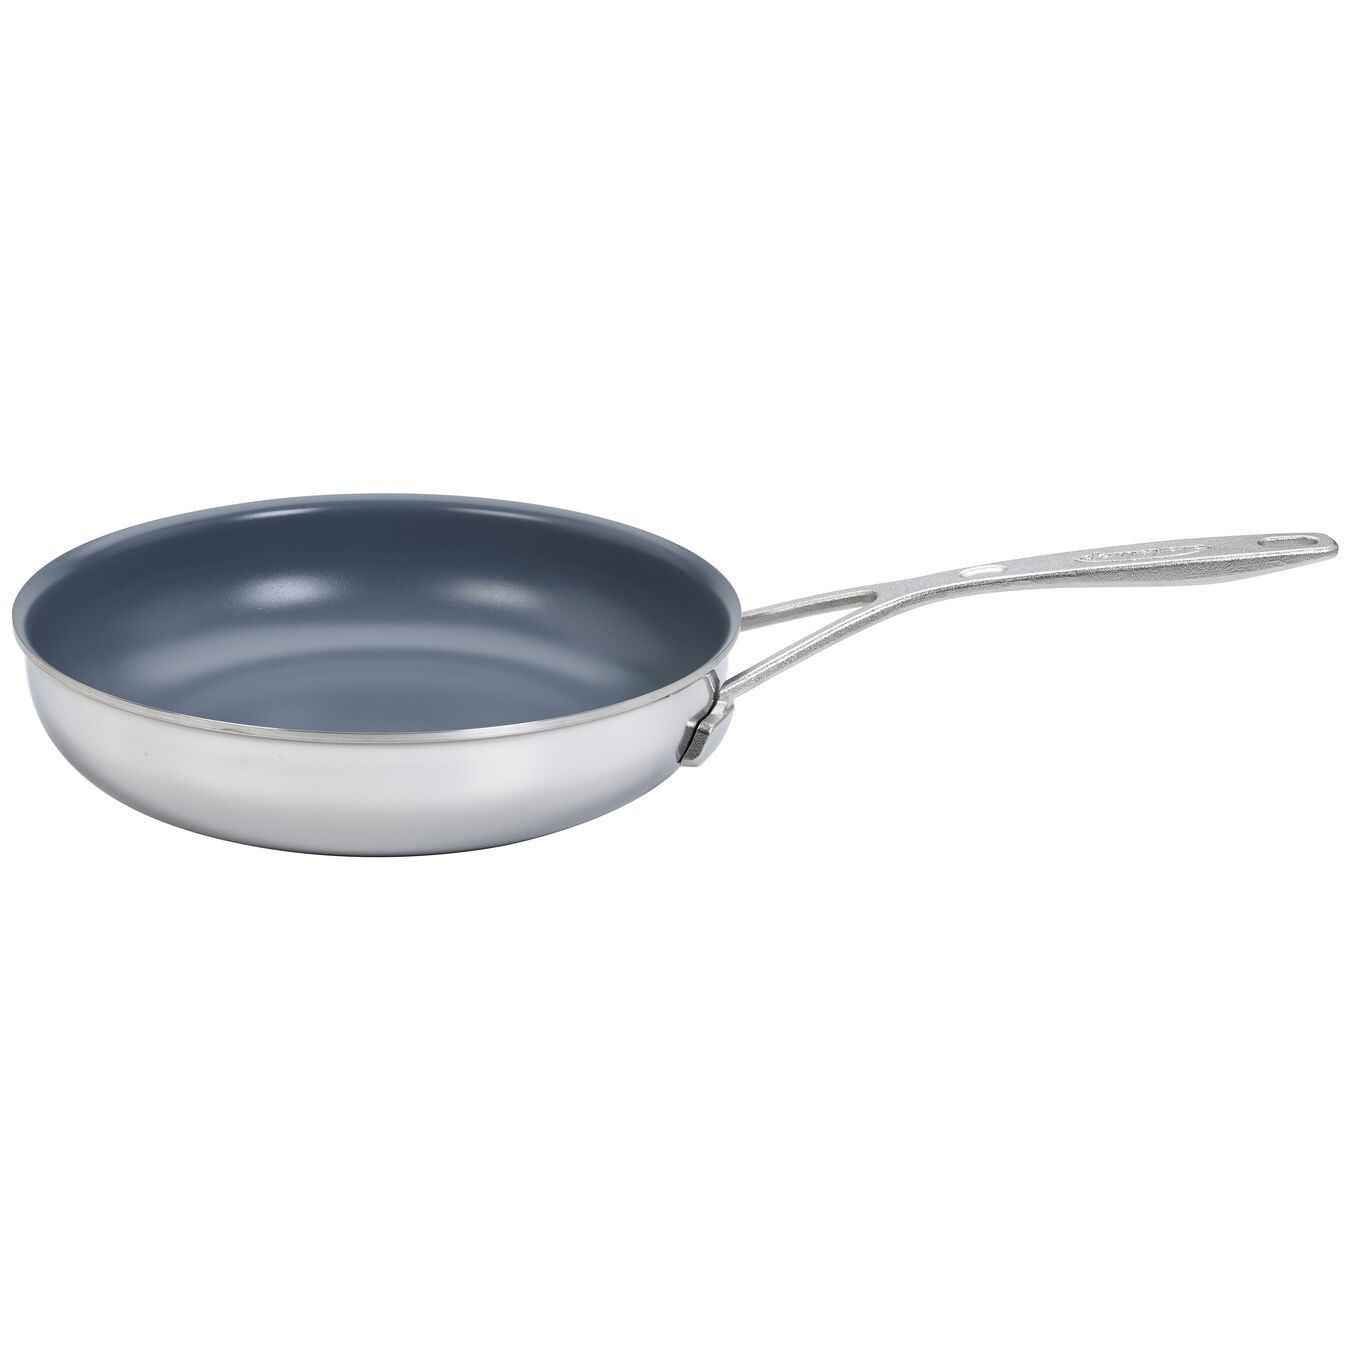 11-inch Stainless Steel Ceramic Nonstick Fry Pan,,large 1